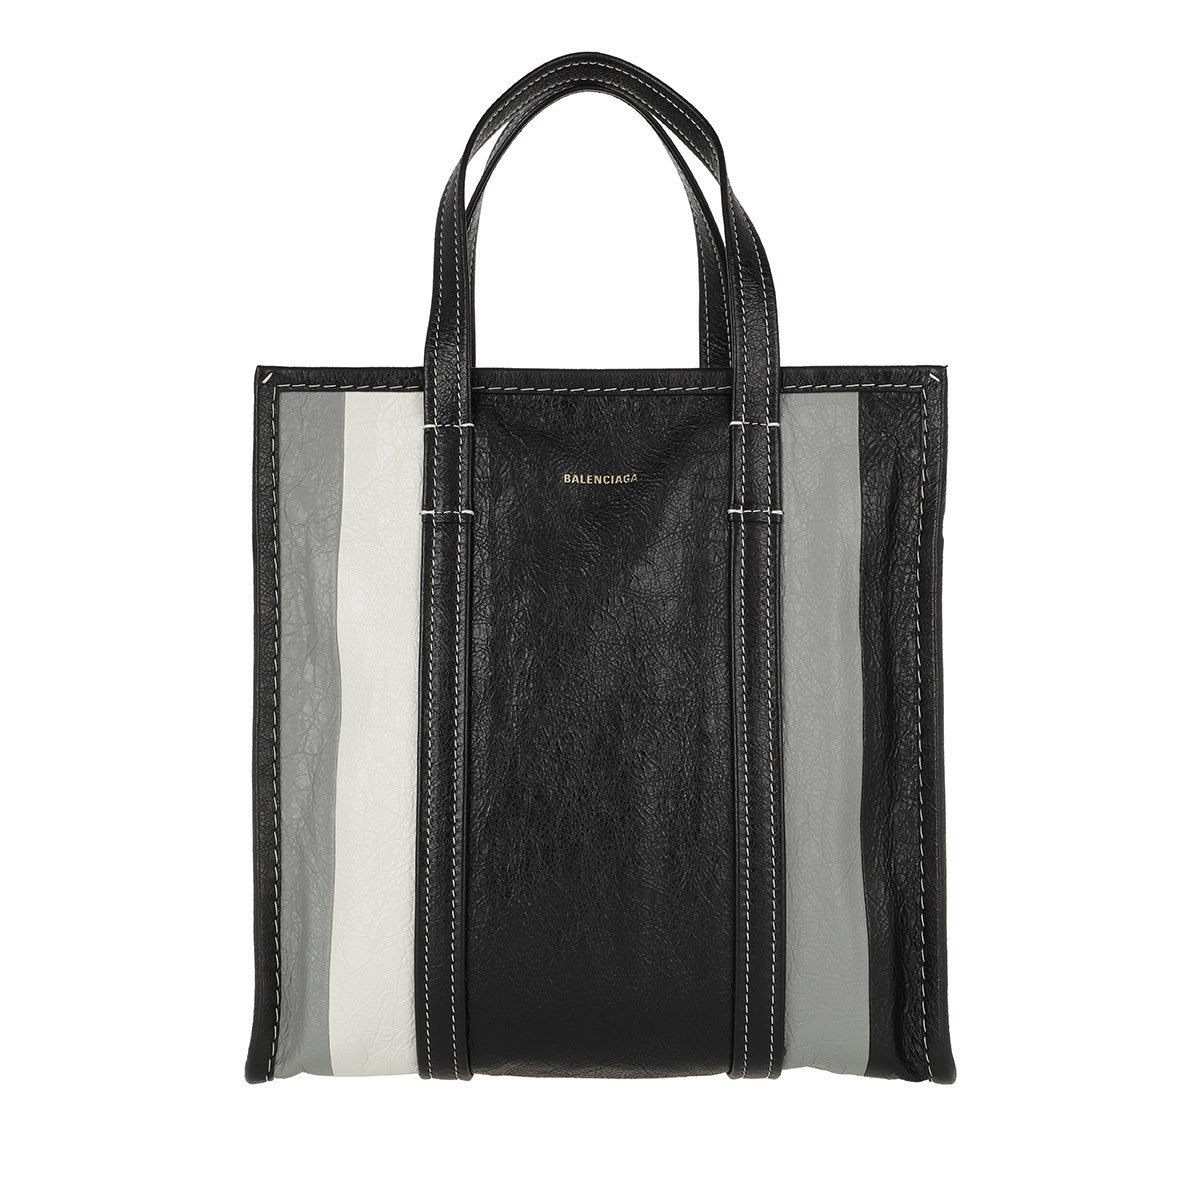 Balenciaga Shopper - Bazar Shopper S Multi - in schwarz - für Damen